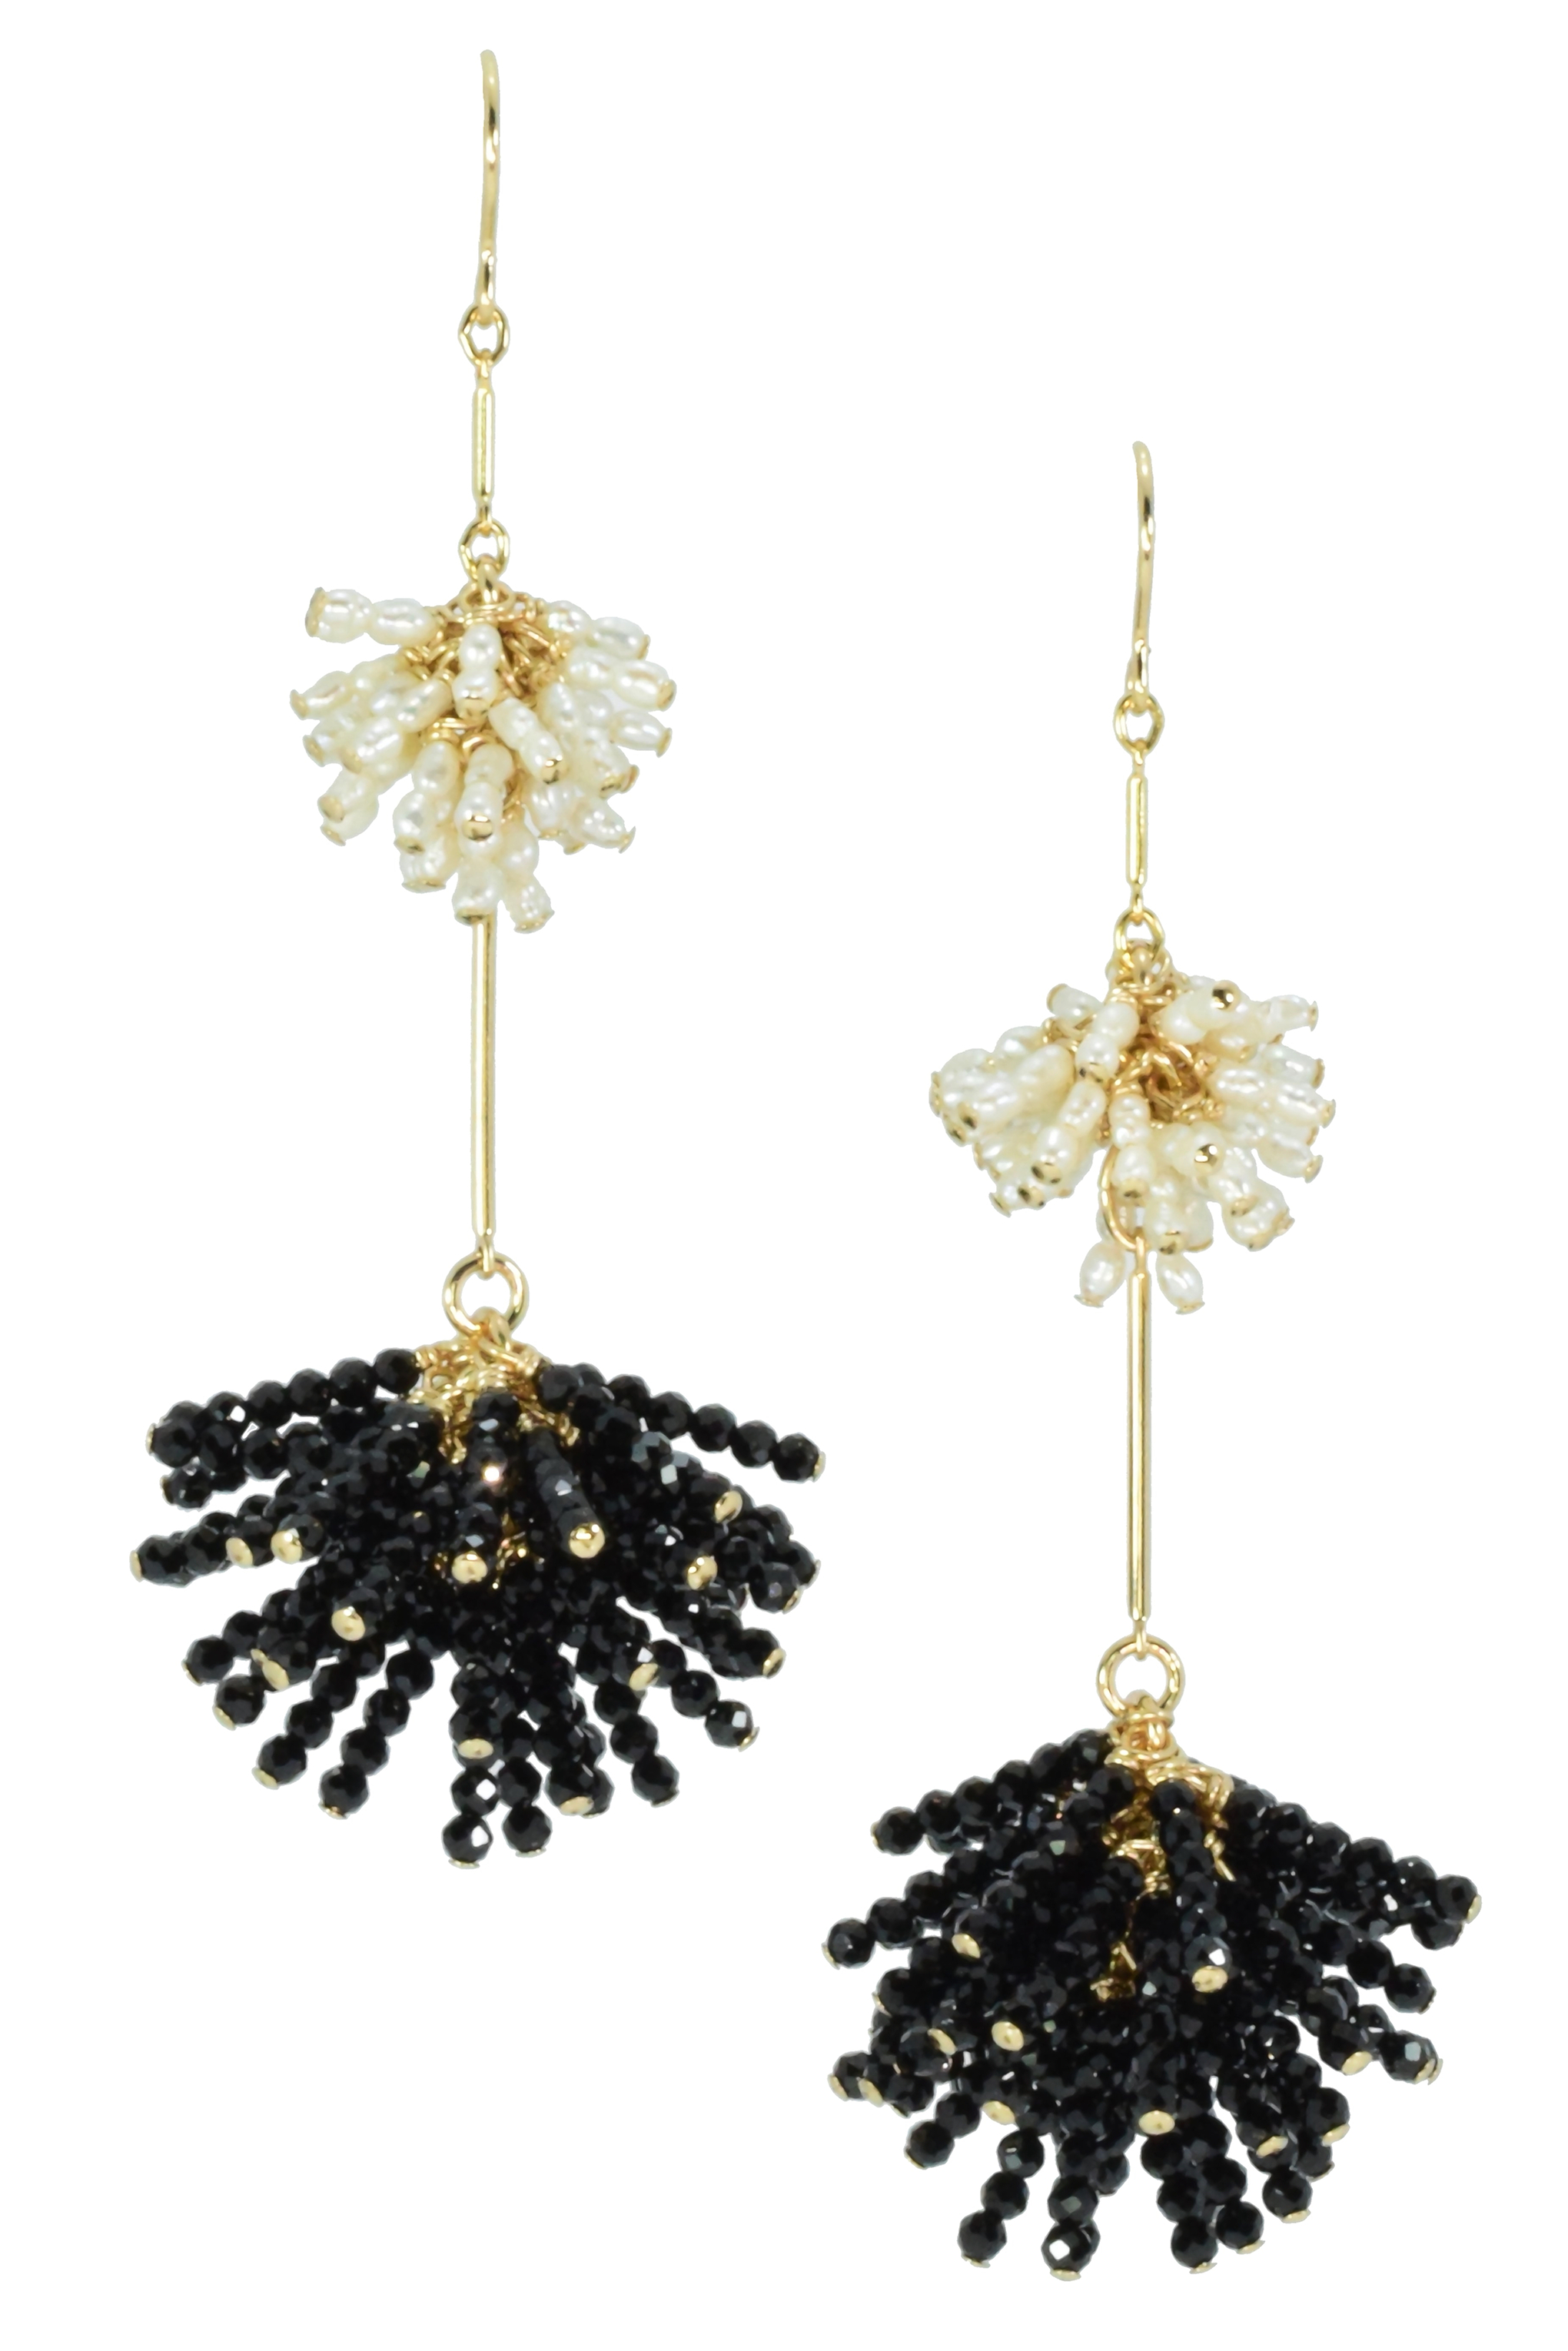 Double Starburst Earrings in Pearl & Black Spinel